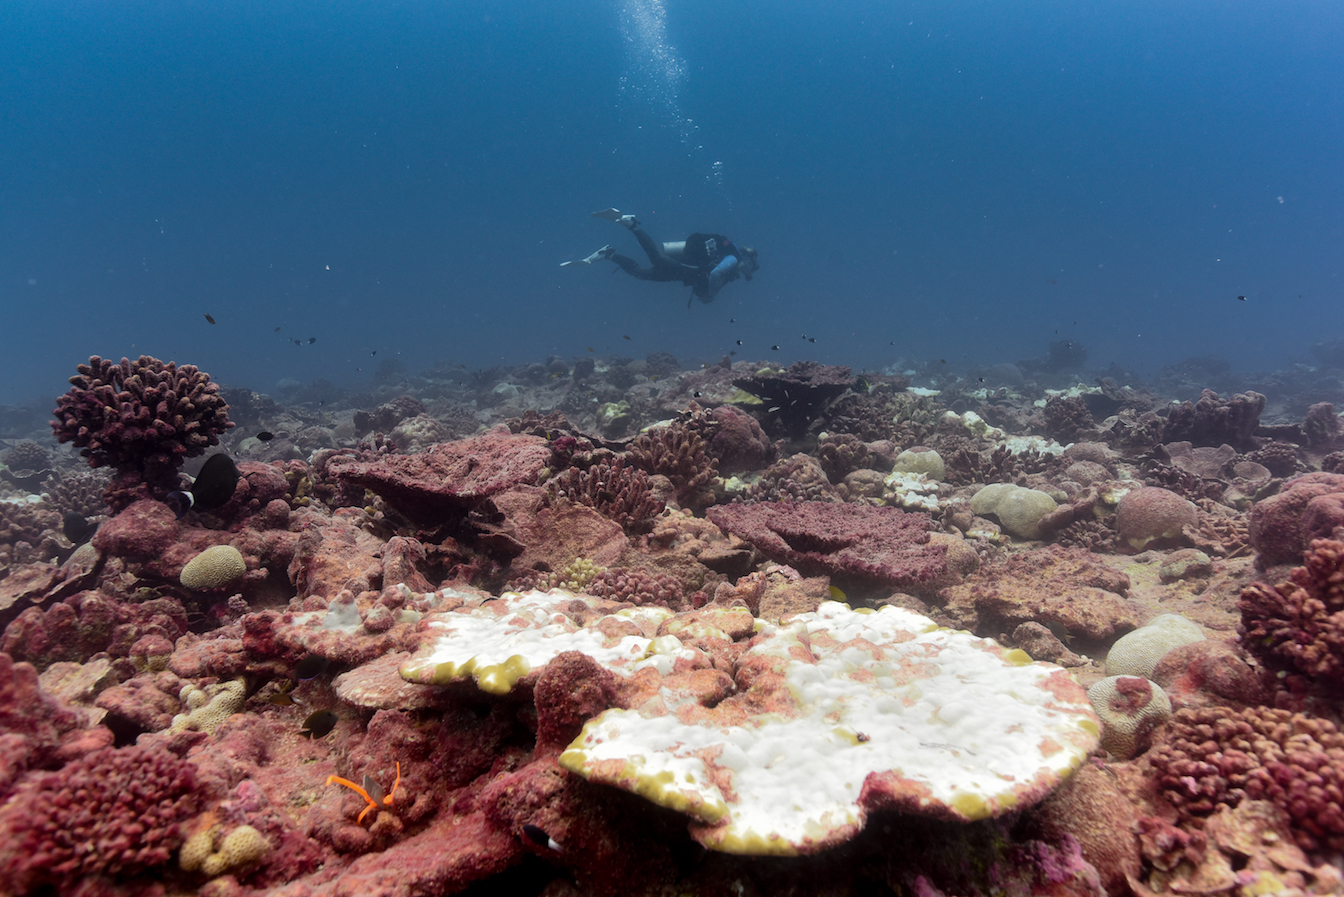 A large bleaching Porites coral colony in the foreground of a reef covered by algae